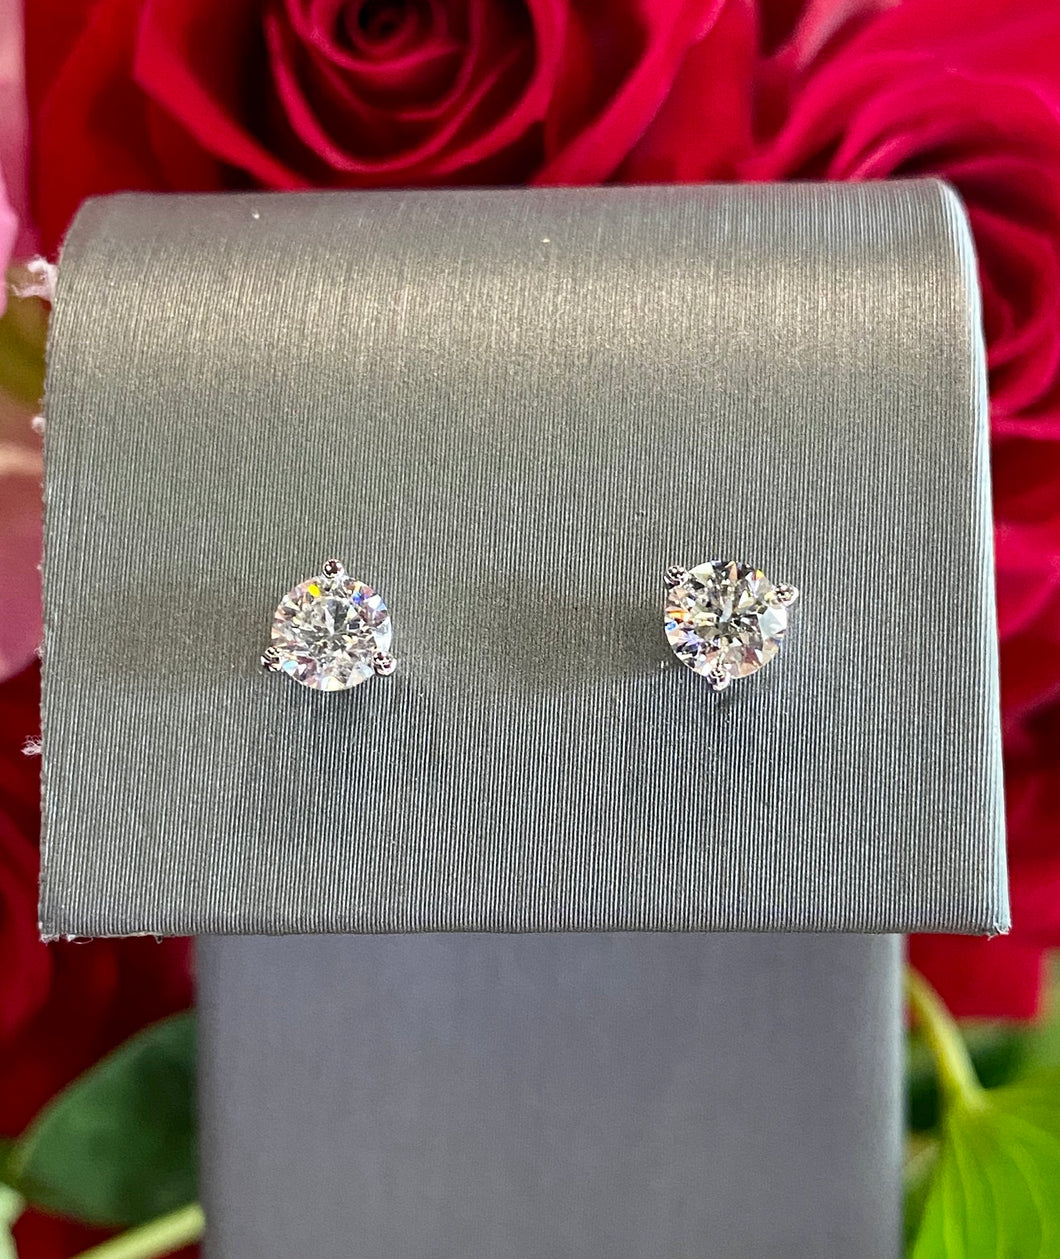 Diamond Stud Earrings 0.75 total carats in 14K White Gold